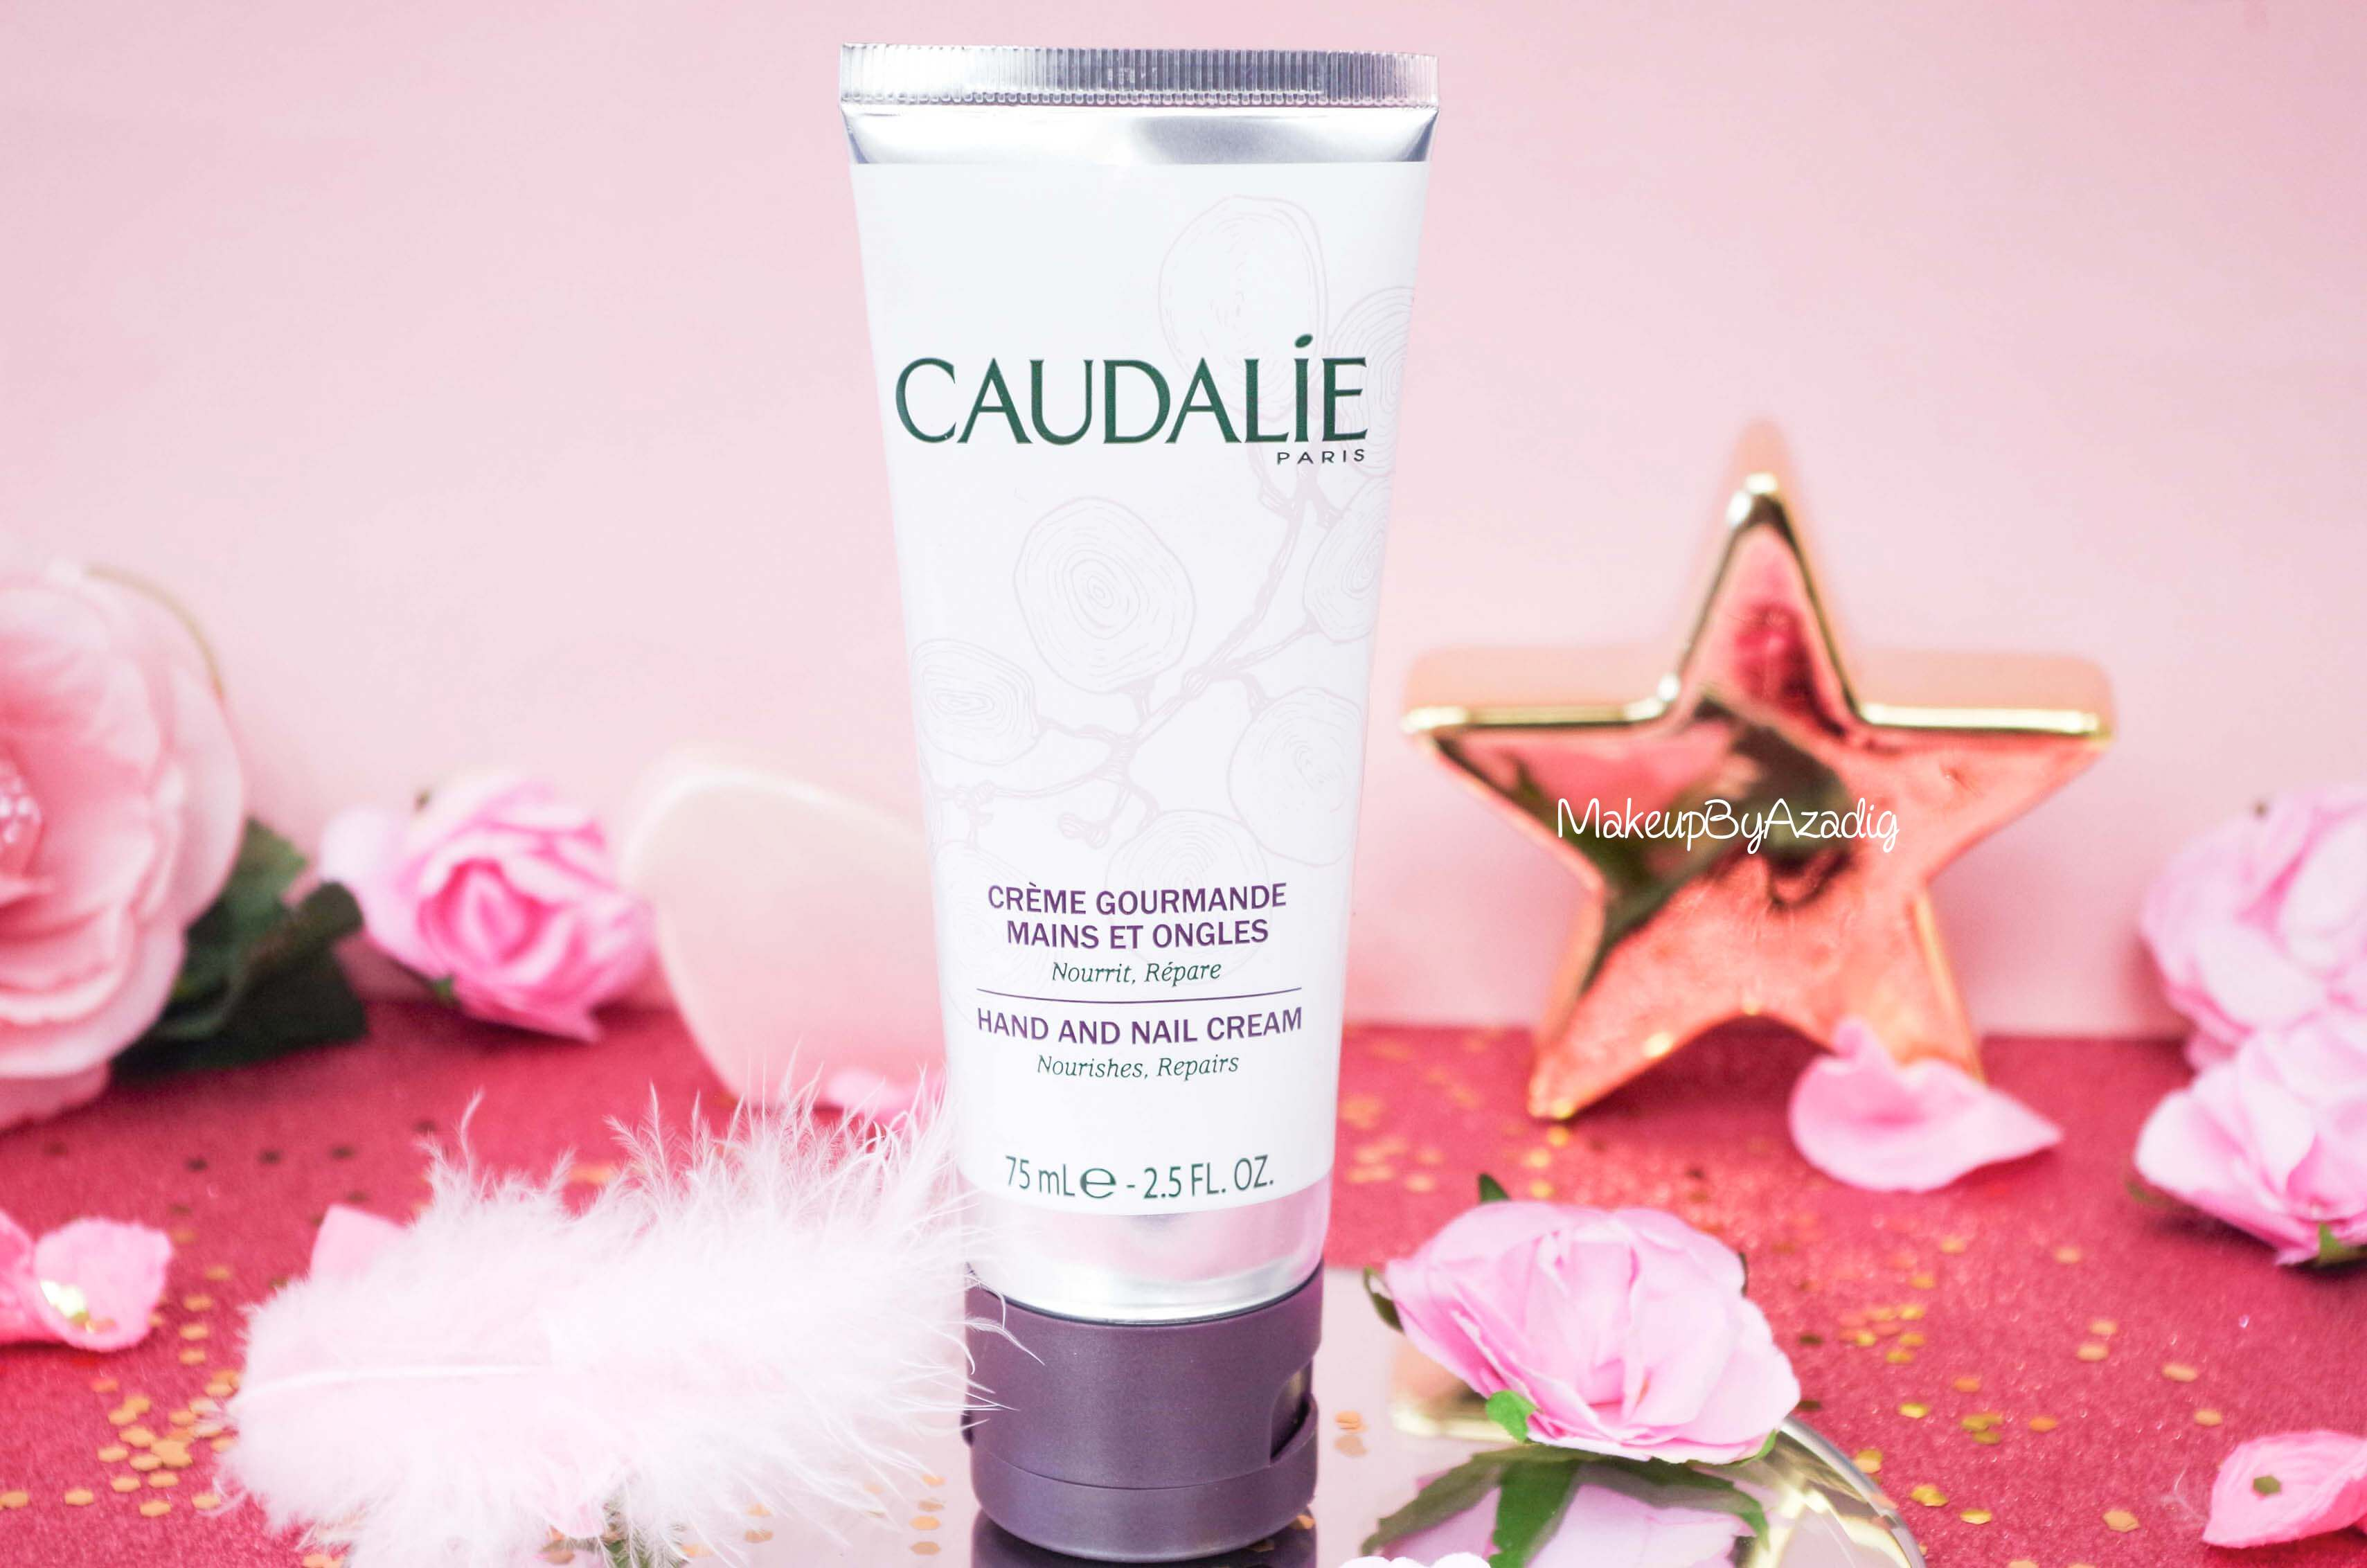 creme-gourmande-mains-ongles-caudalie-hydratante-paris-revue-review-avis-prix-efficacite-makeupbyazadig-cream